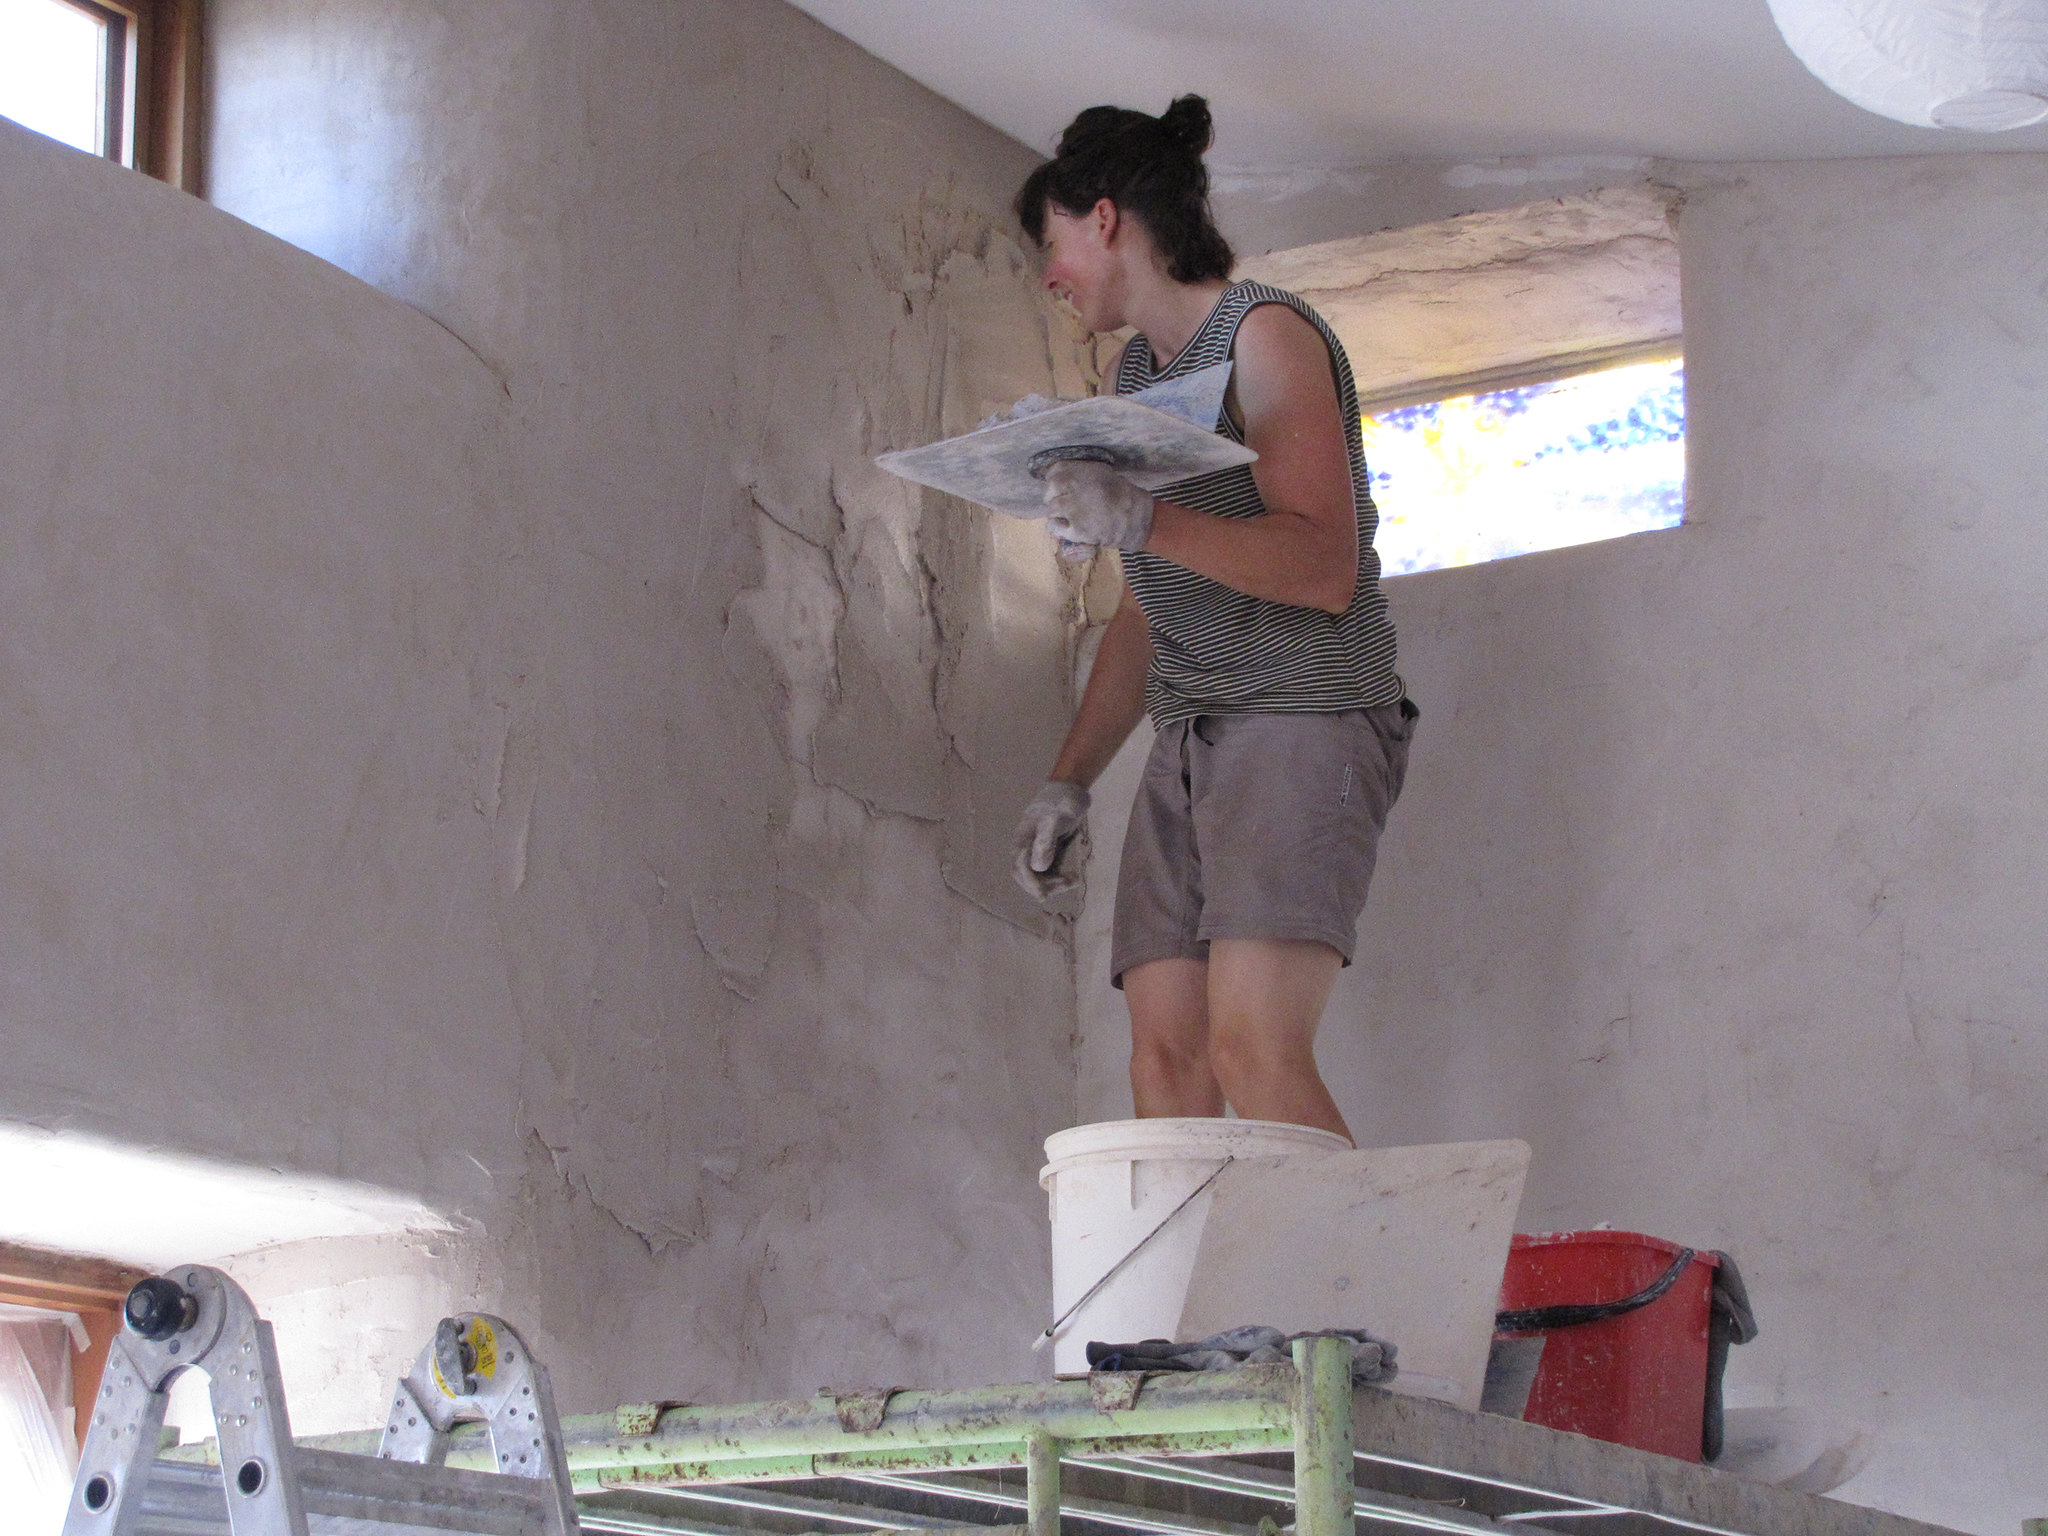 image - Easy to Follow Steps to a Finding A Good Plasterer